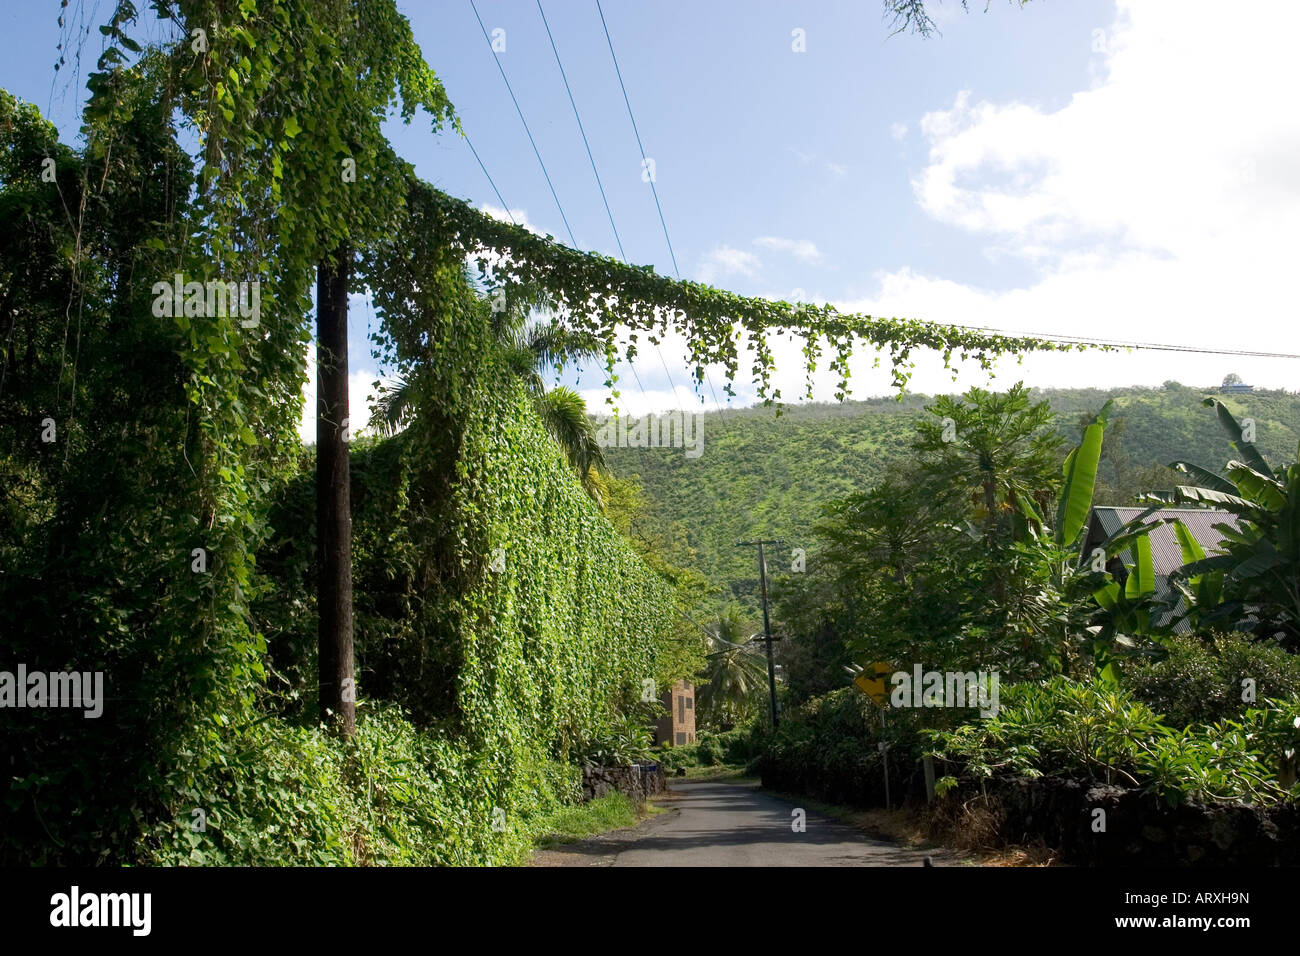 hight resolution of vines cover telephone pole and wires on rural big island street